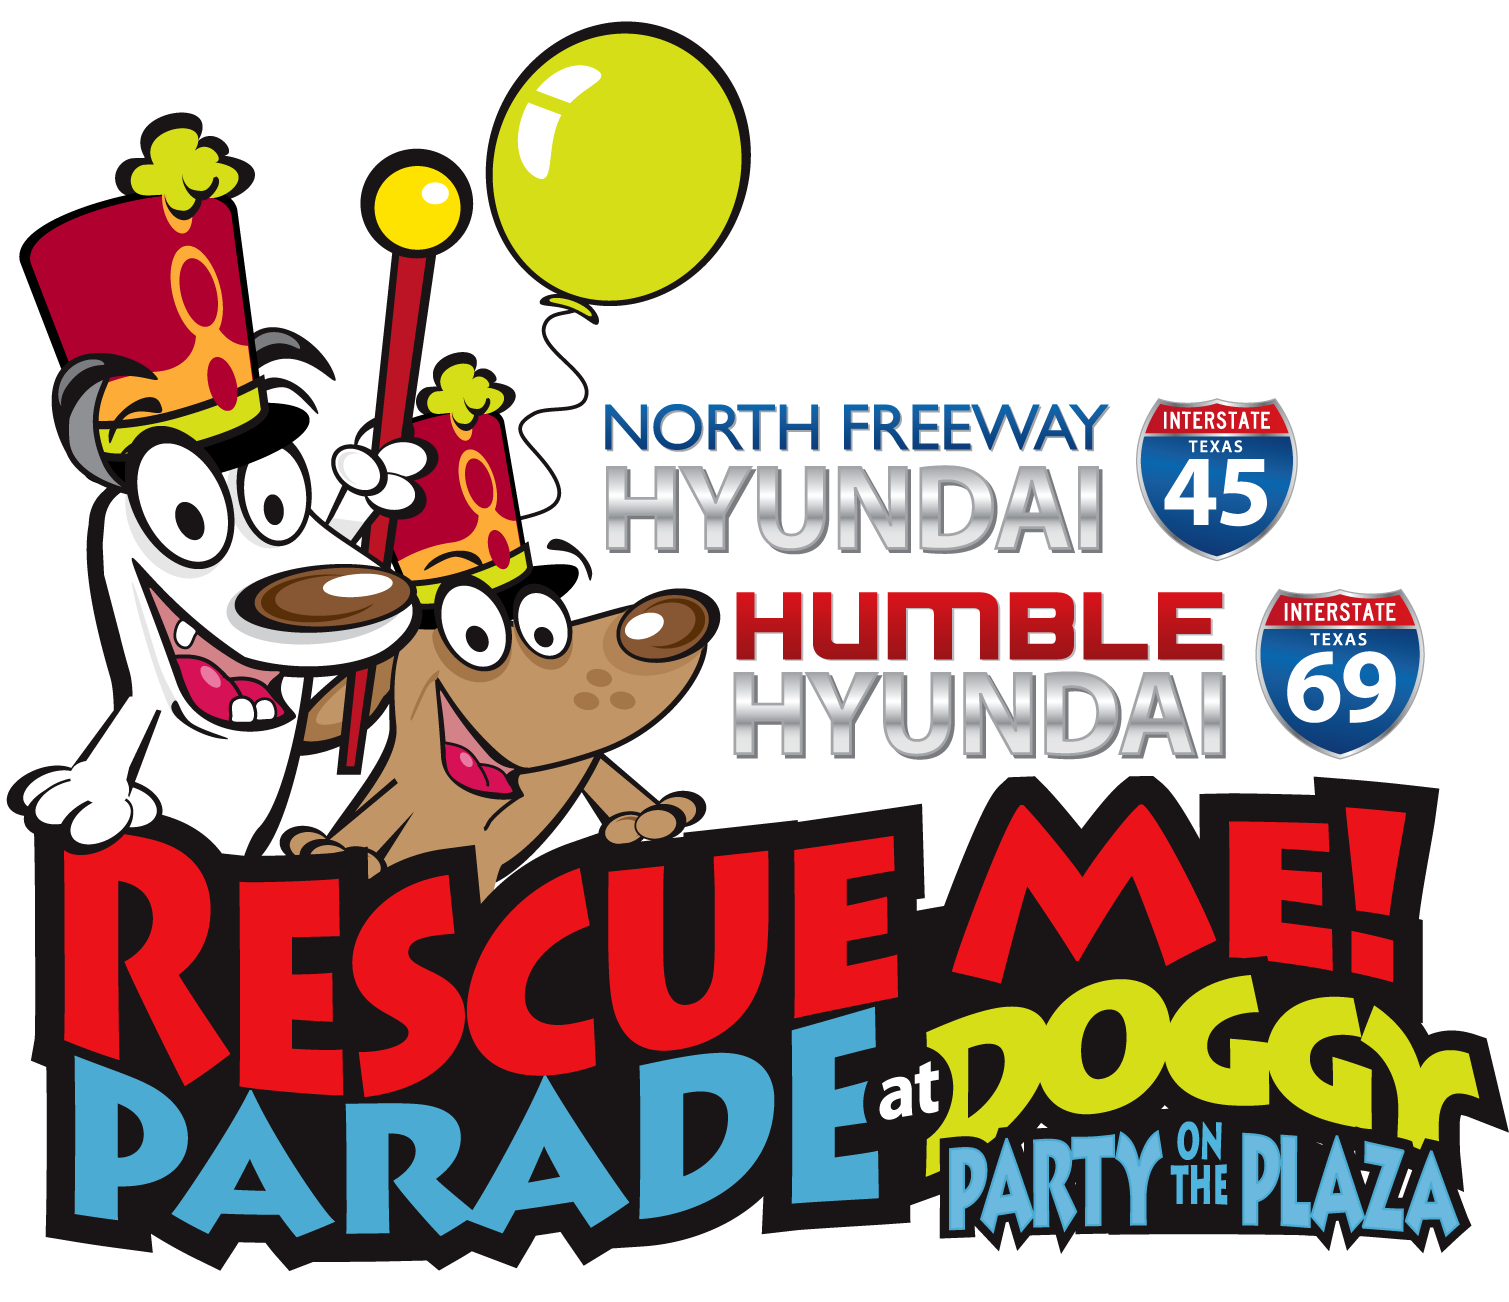 Rescue me doggy party. Parade clipart parade floats